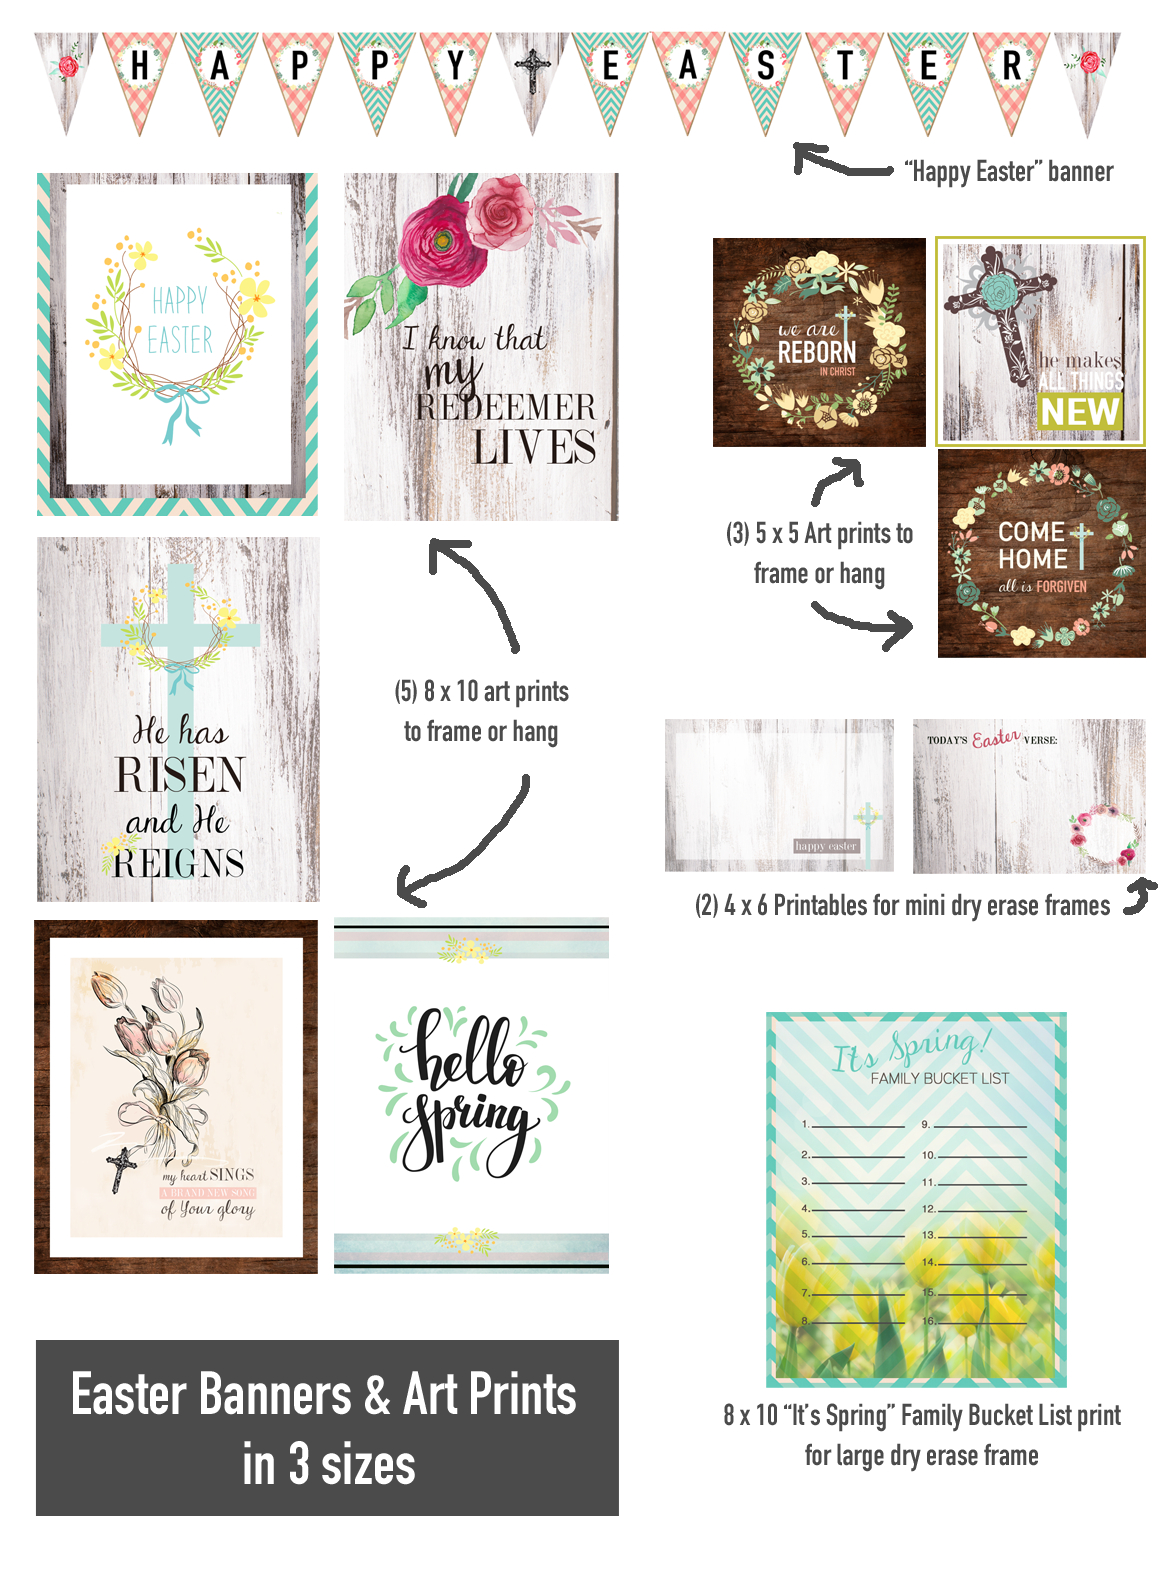 30+ Free Easter Home Decor Printables - Christ Centered Holidays - Free Printable Christian Art